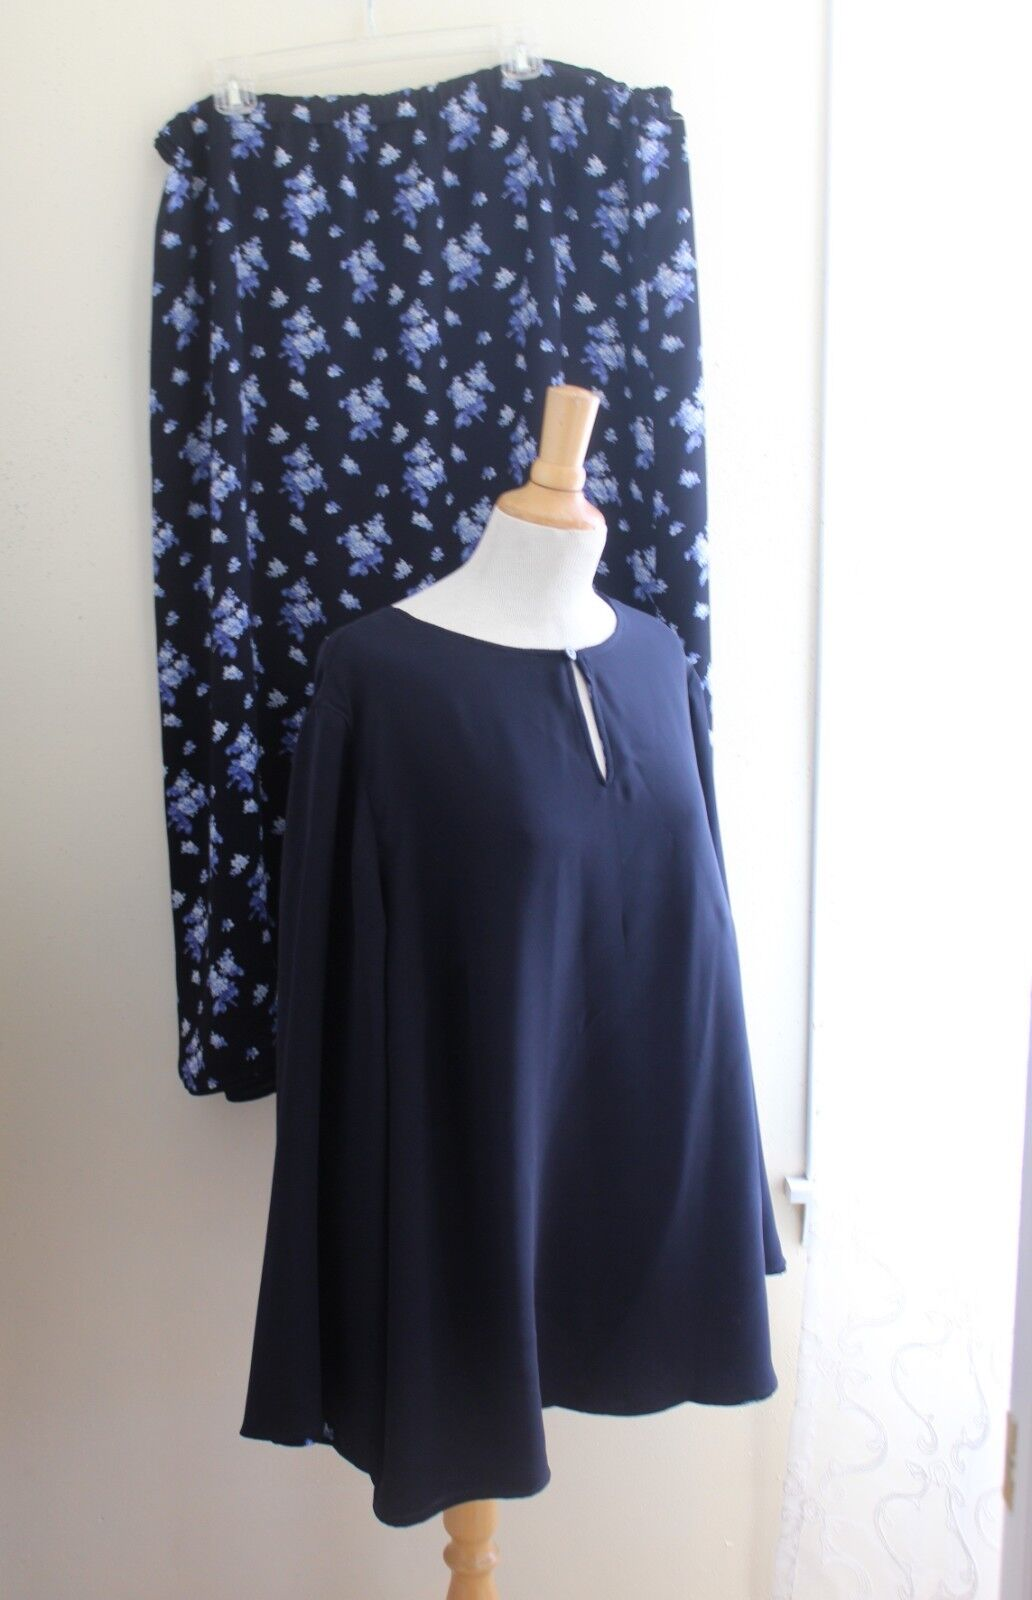 Liz Claiborne Sz 3X 2X Artsy Navy Reversible Tunic Top Shirt + Skirt Set Outfit